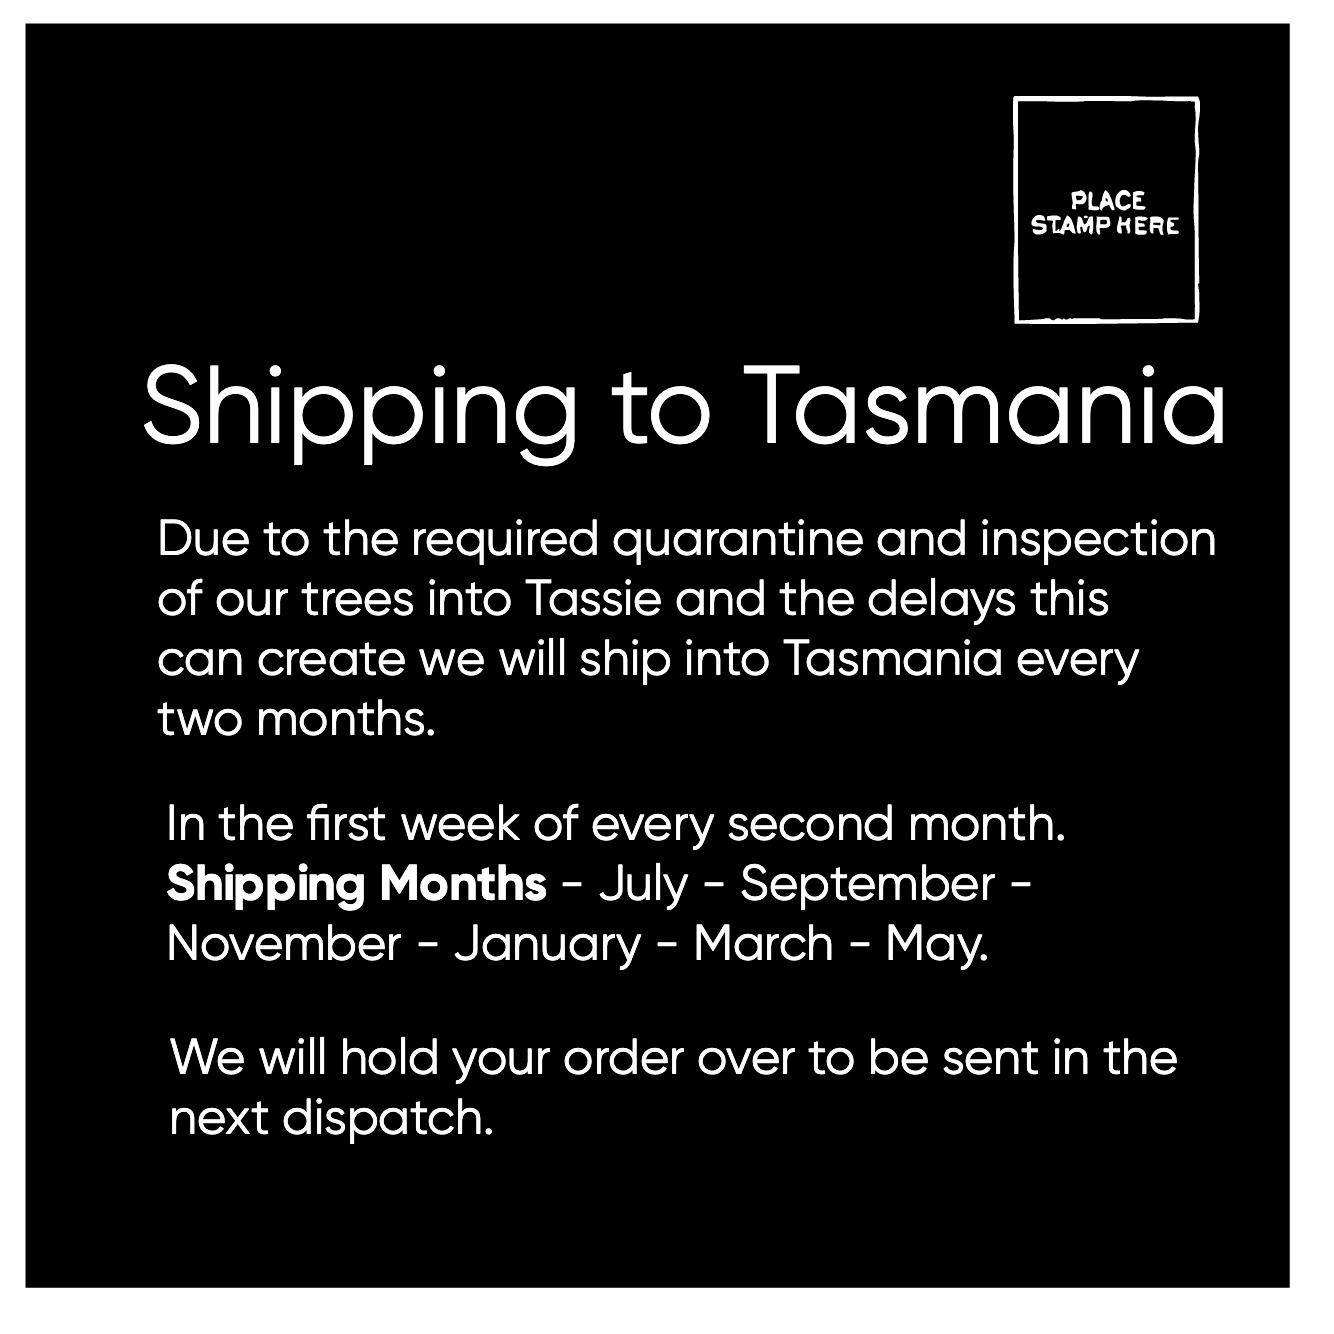 Shipping to Tasmania .jpg